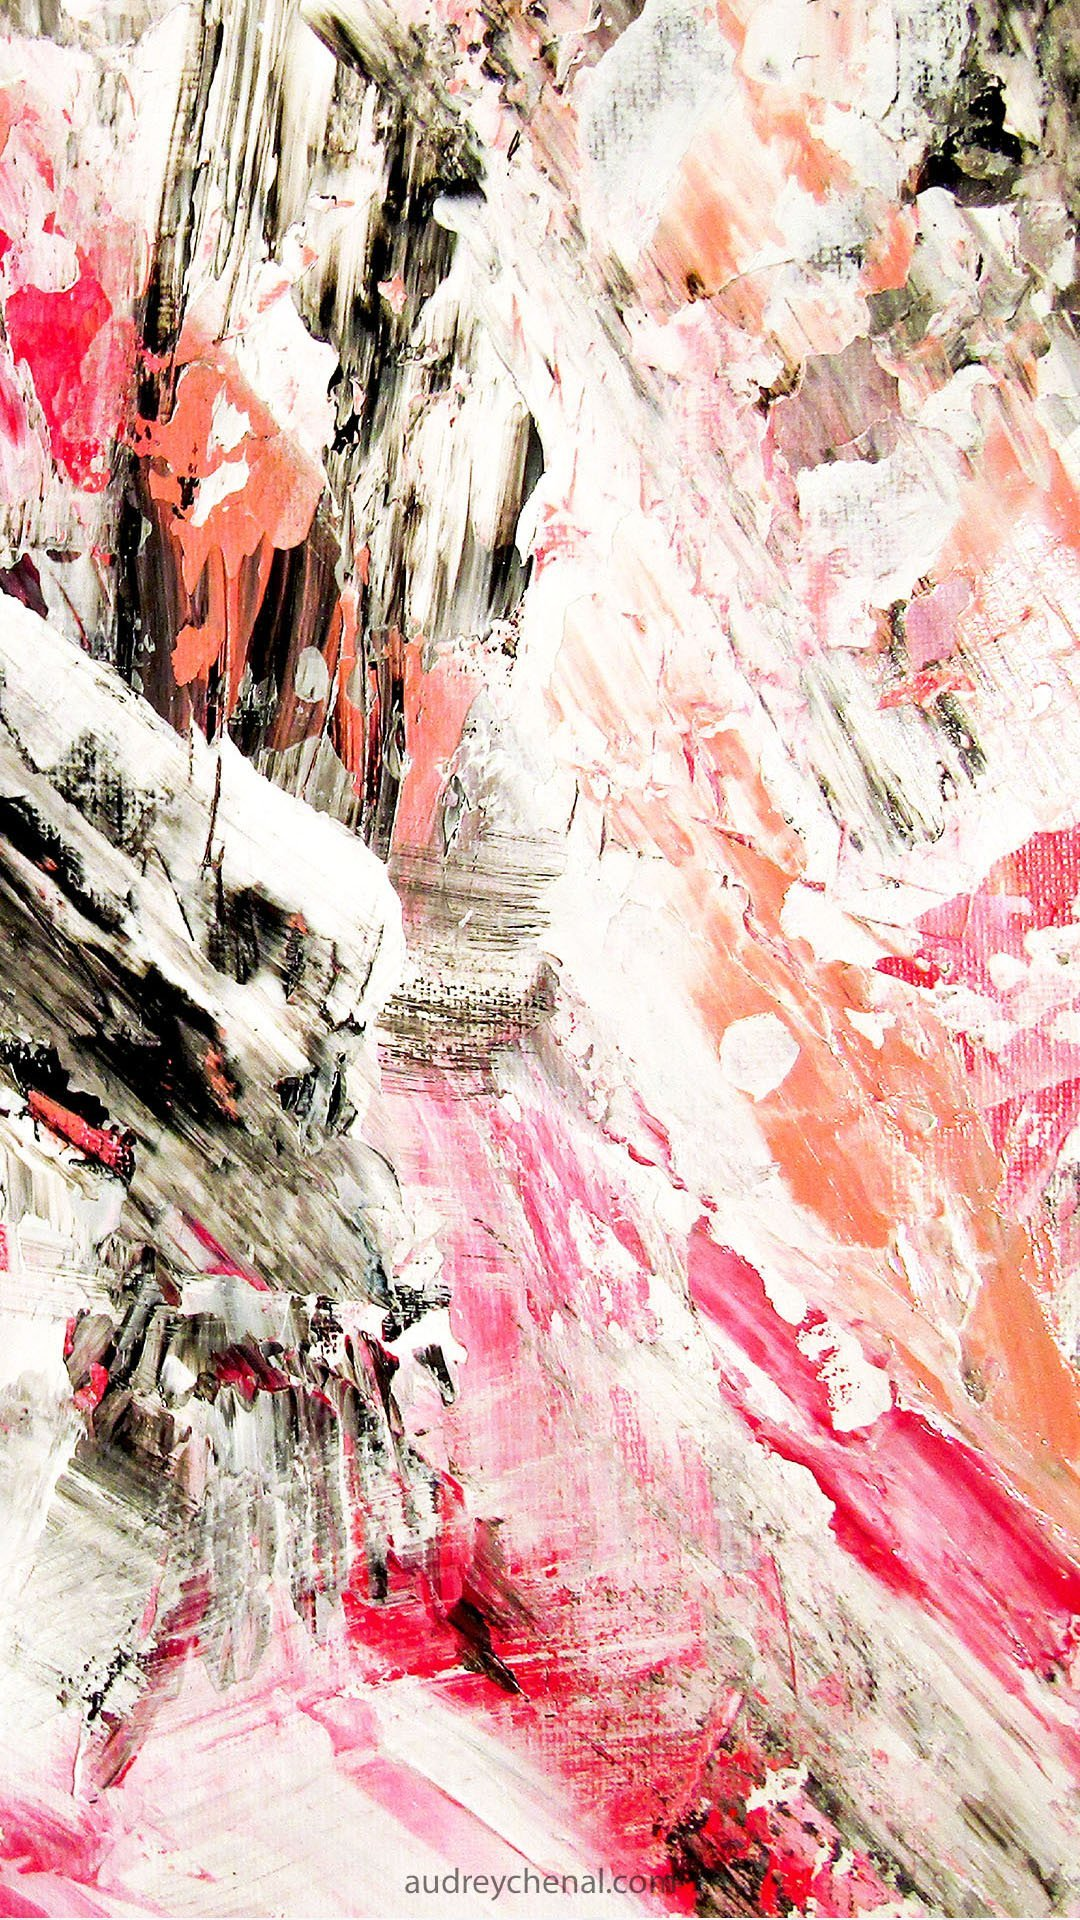 candy pink coral acrylic wallpaper background by Audreychenal web